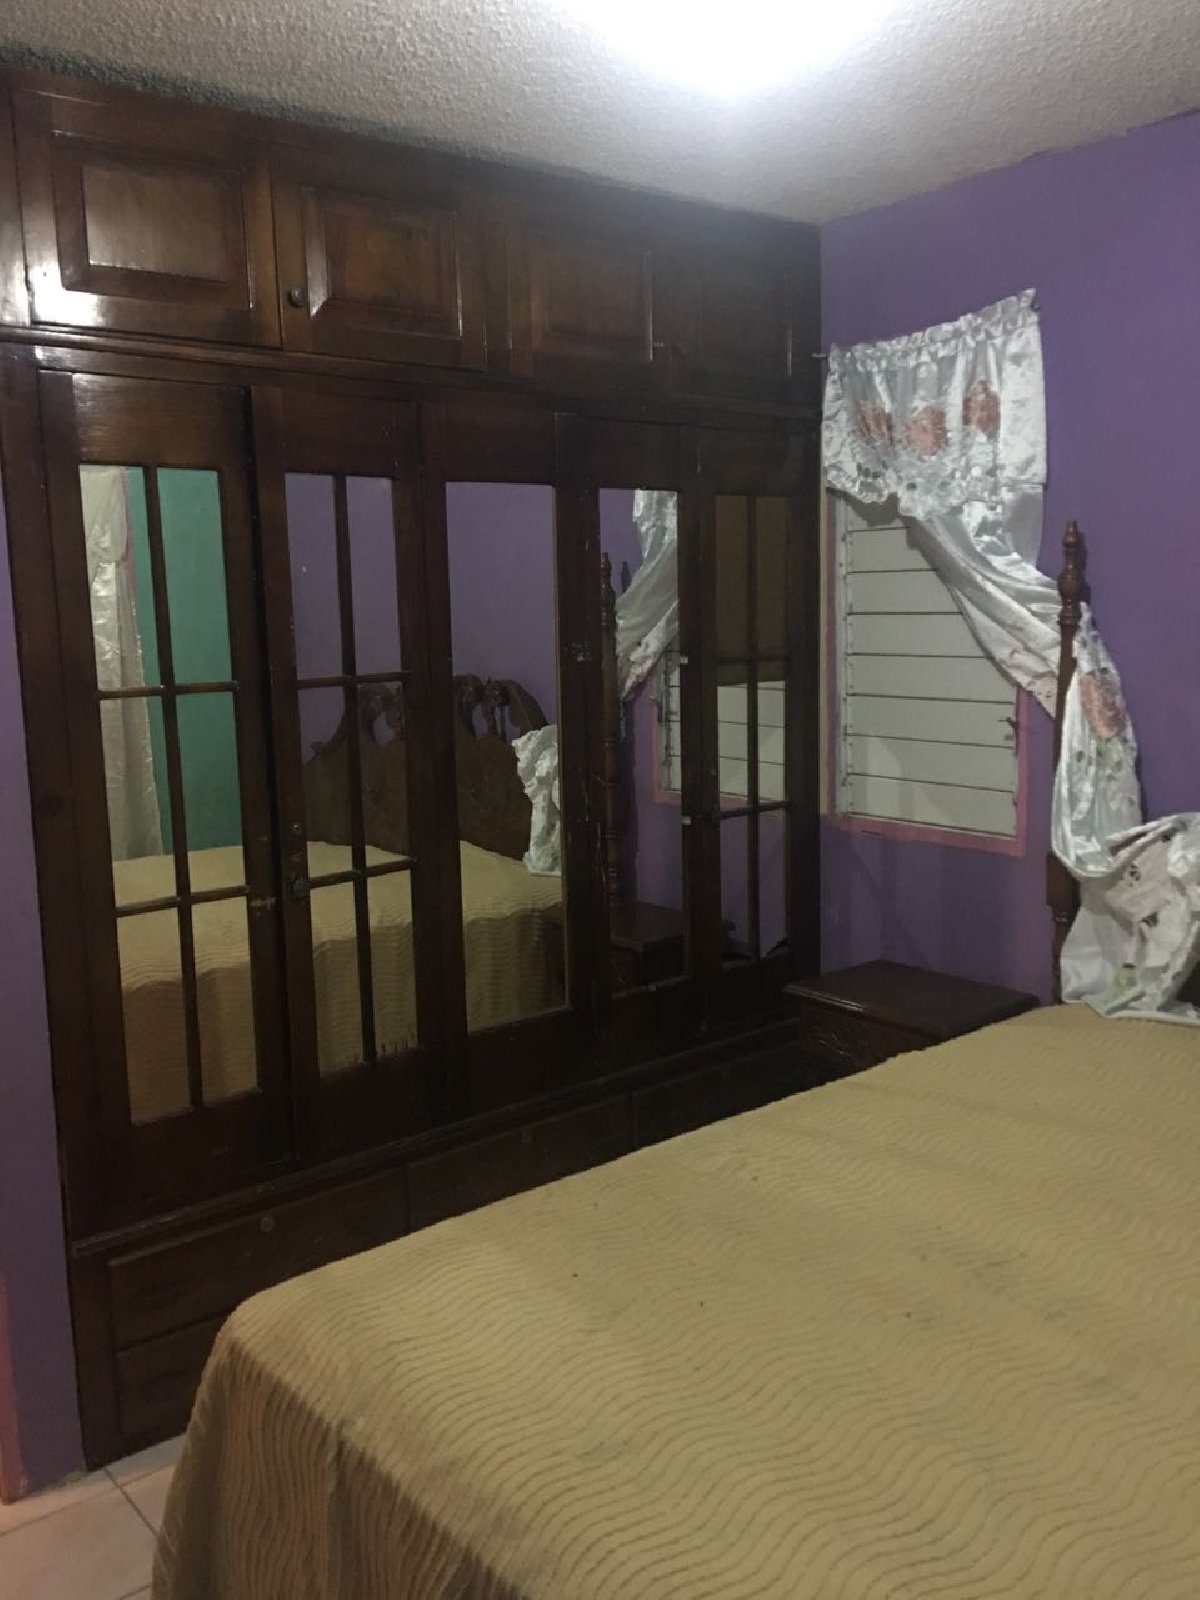 Furnished 1 Bedroom Apartment For Rent In Mandeville: 1 Furnished Bedroom For Rent In Kingston In Spanish Town